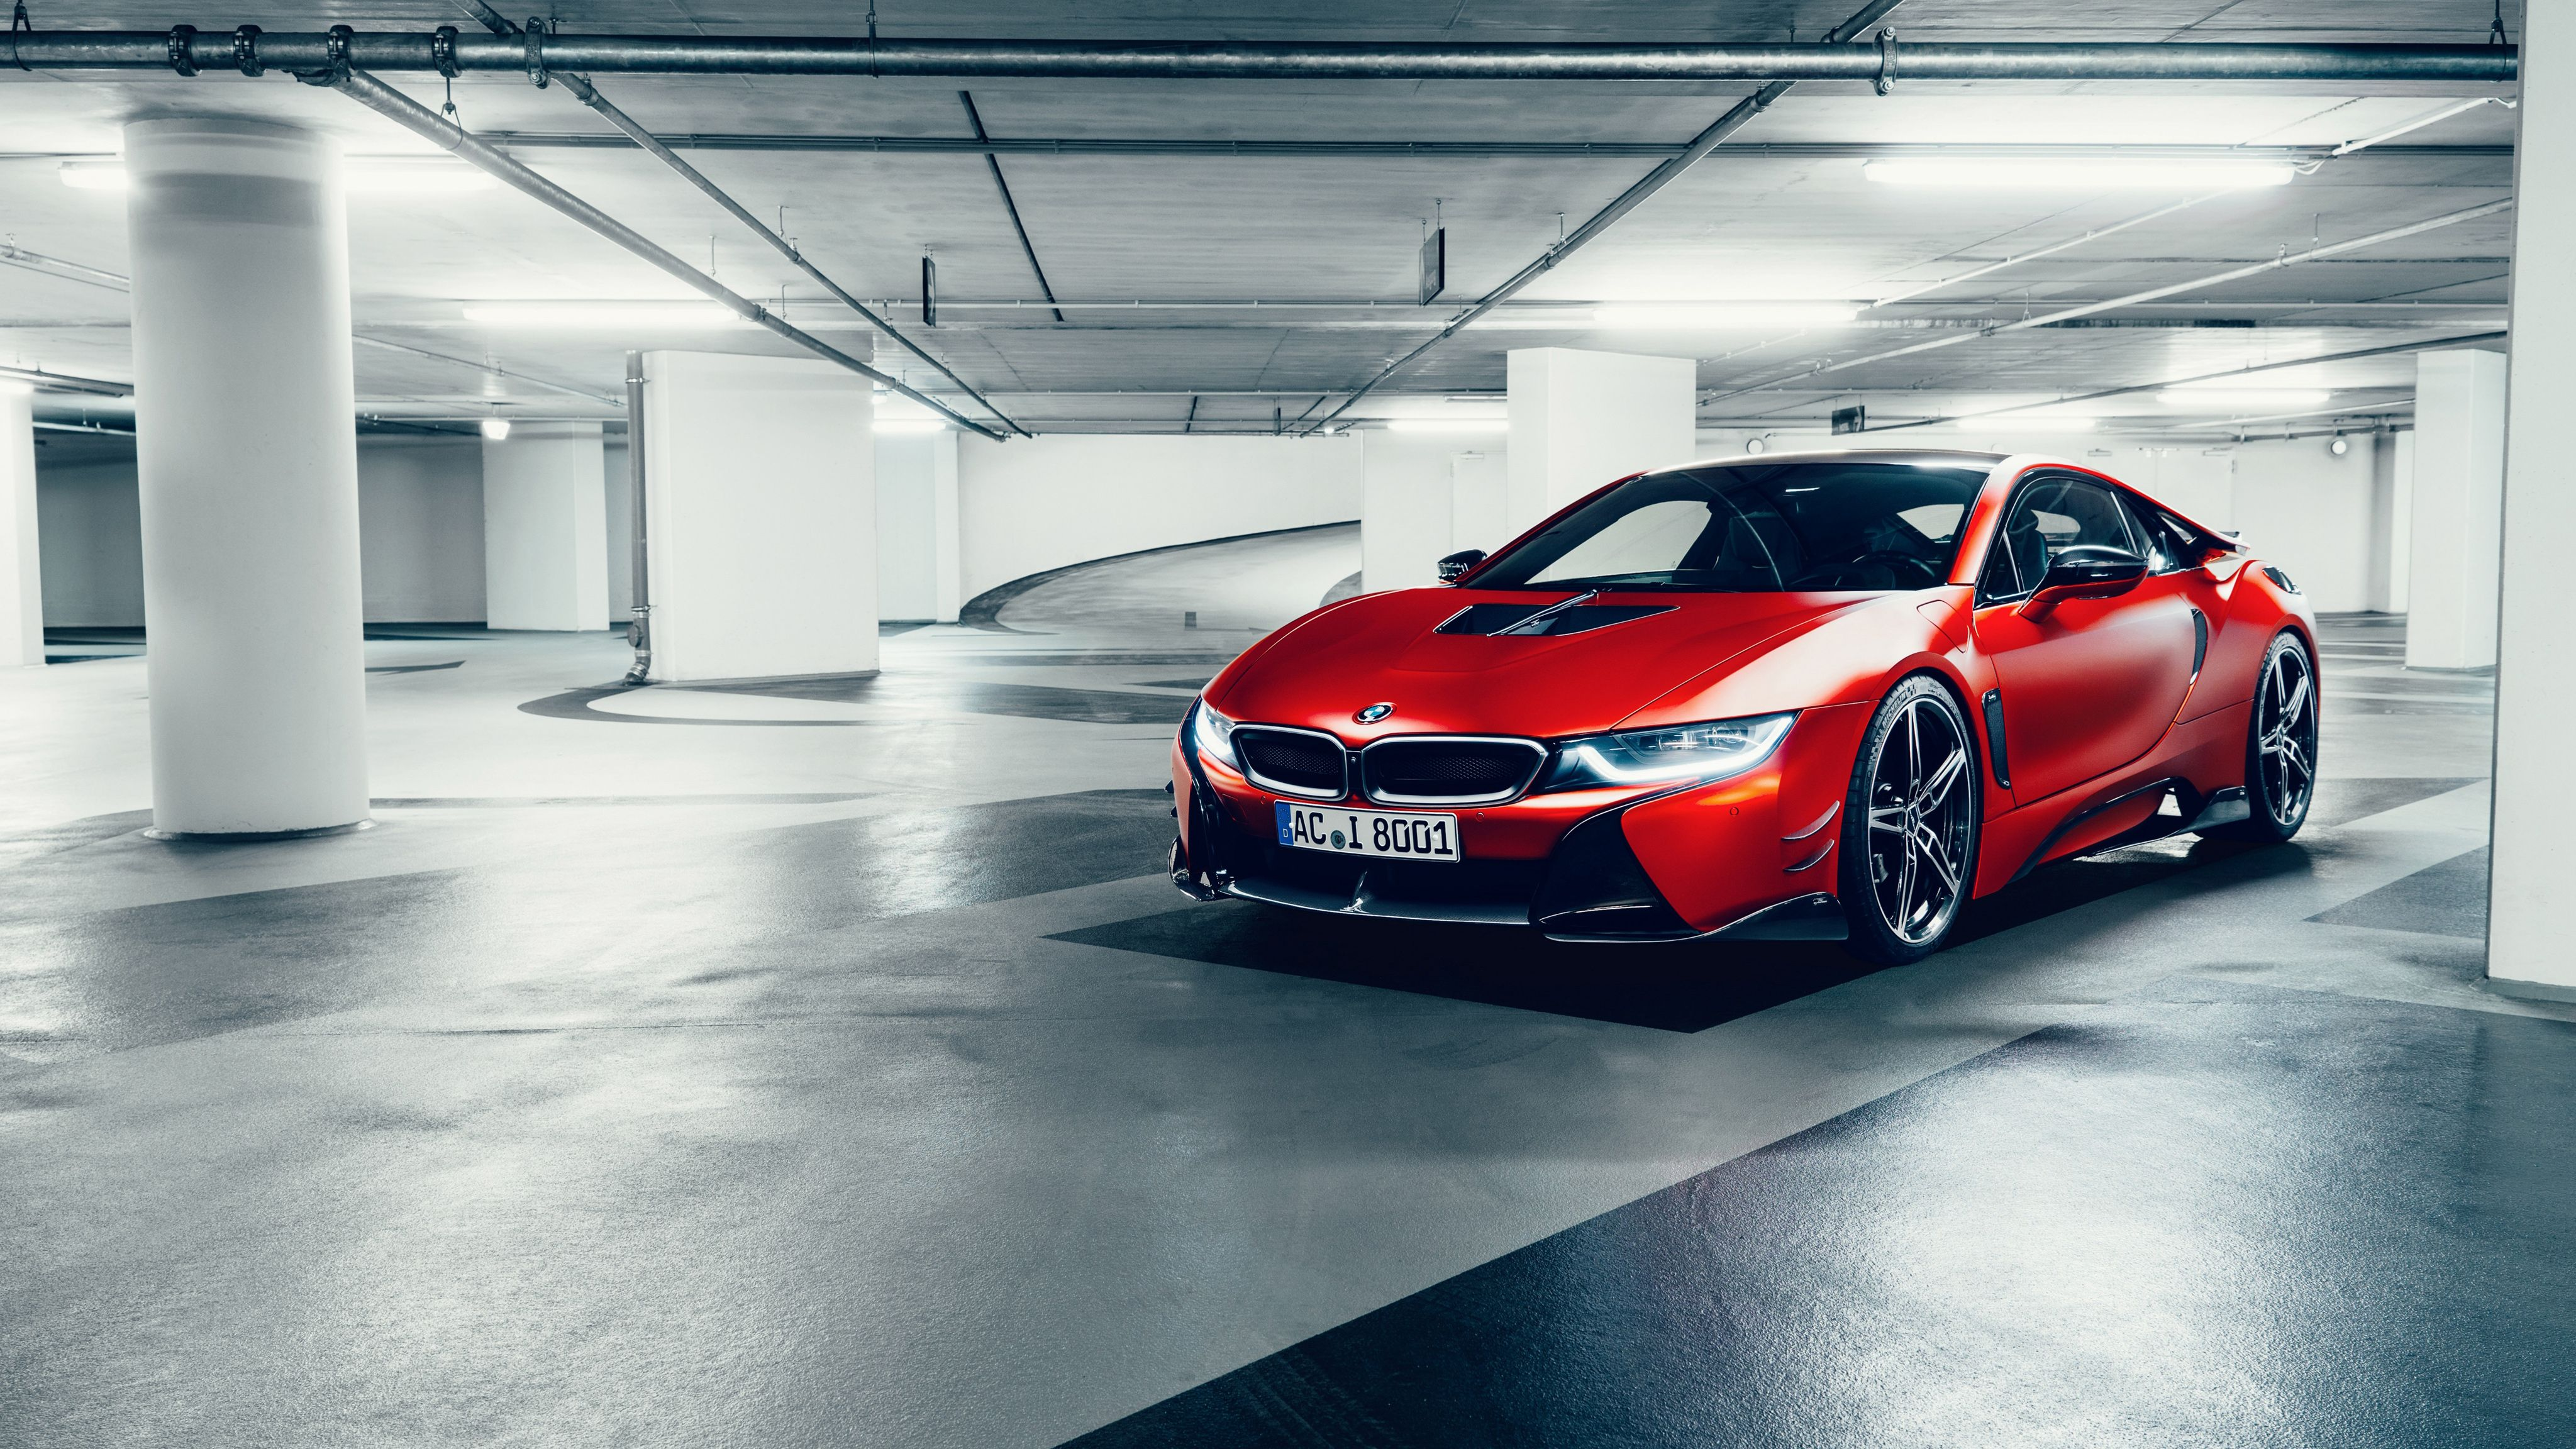 Bmw Ac Schnitzer Acs8 Sport Wallpaper Phone In 2020 With Images